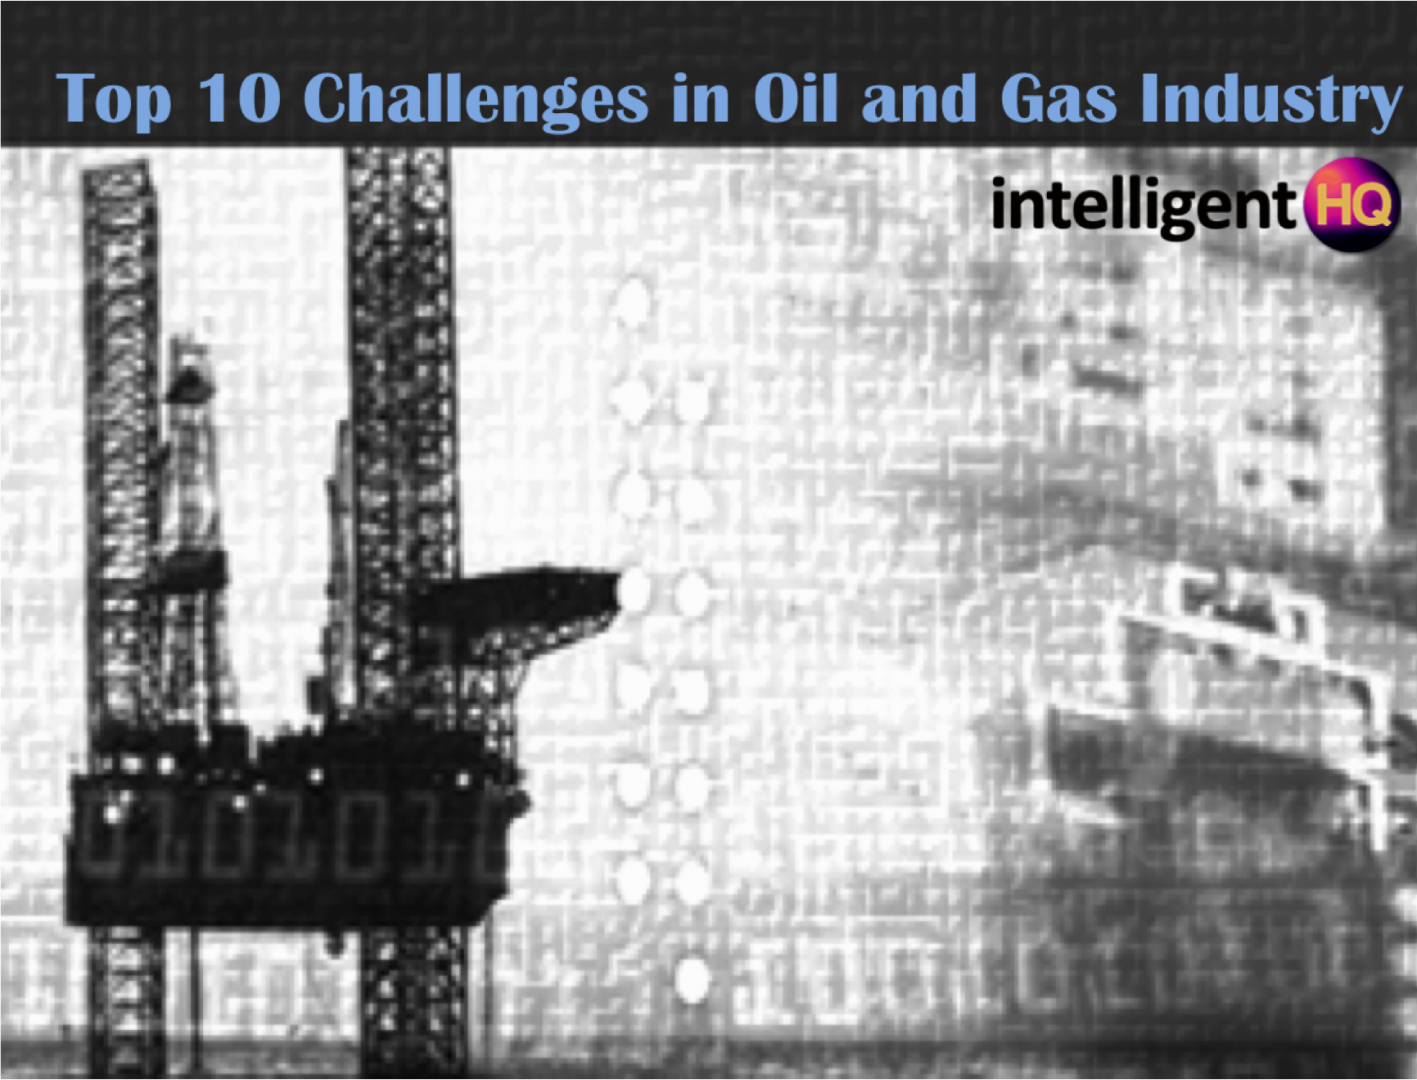 Top 10 Challenges in Oil and Gas Intelligenthq